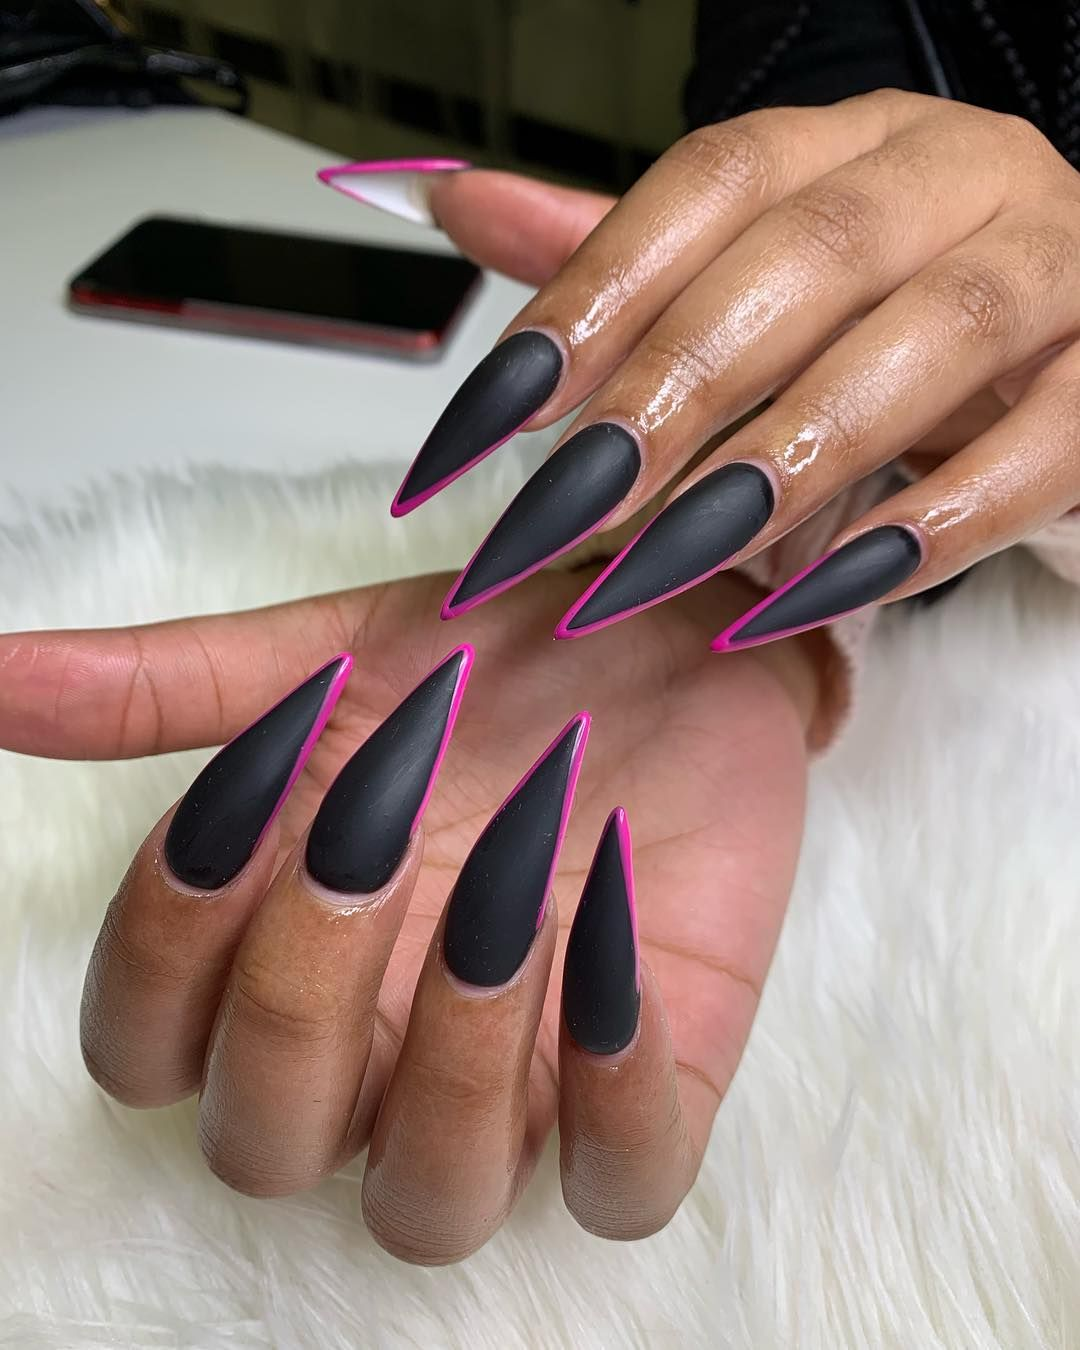 Clawed Nail Lounge By Ashley V On Instagram Matte Black With A Girly Touch Clawed Cl Acrylic Nails Stiletto White Stiletto Nails Matte Black Nails